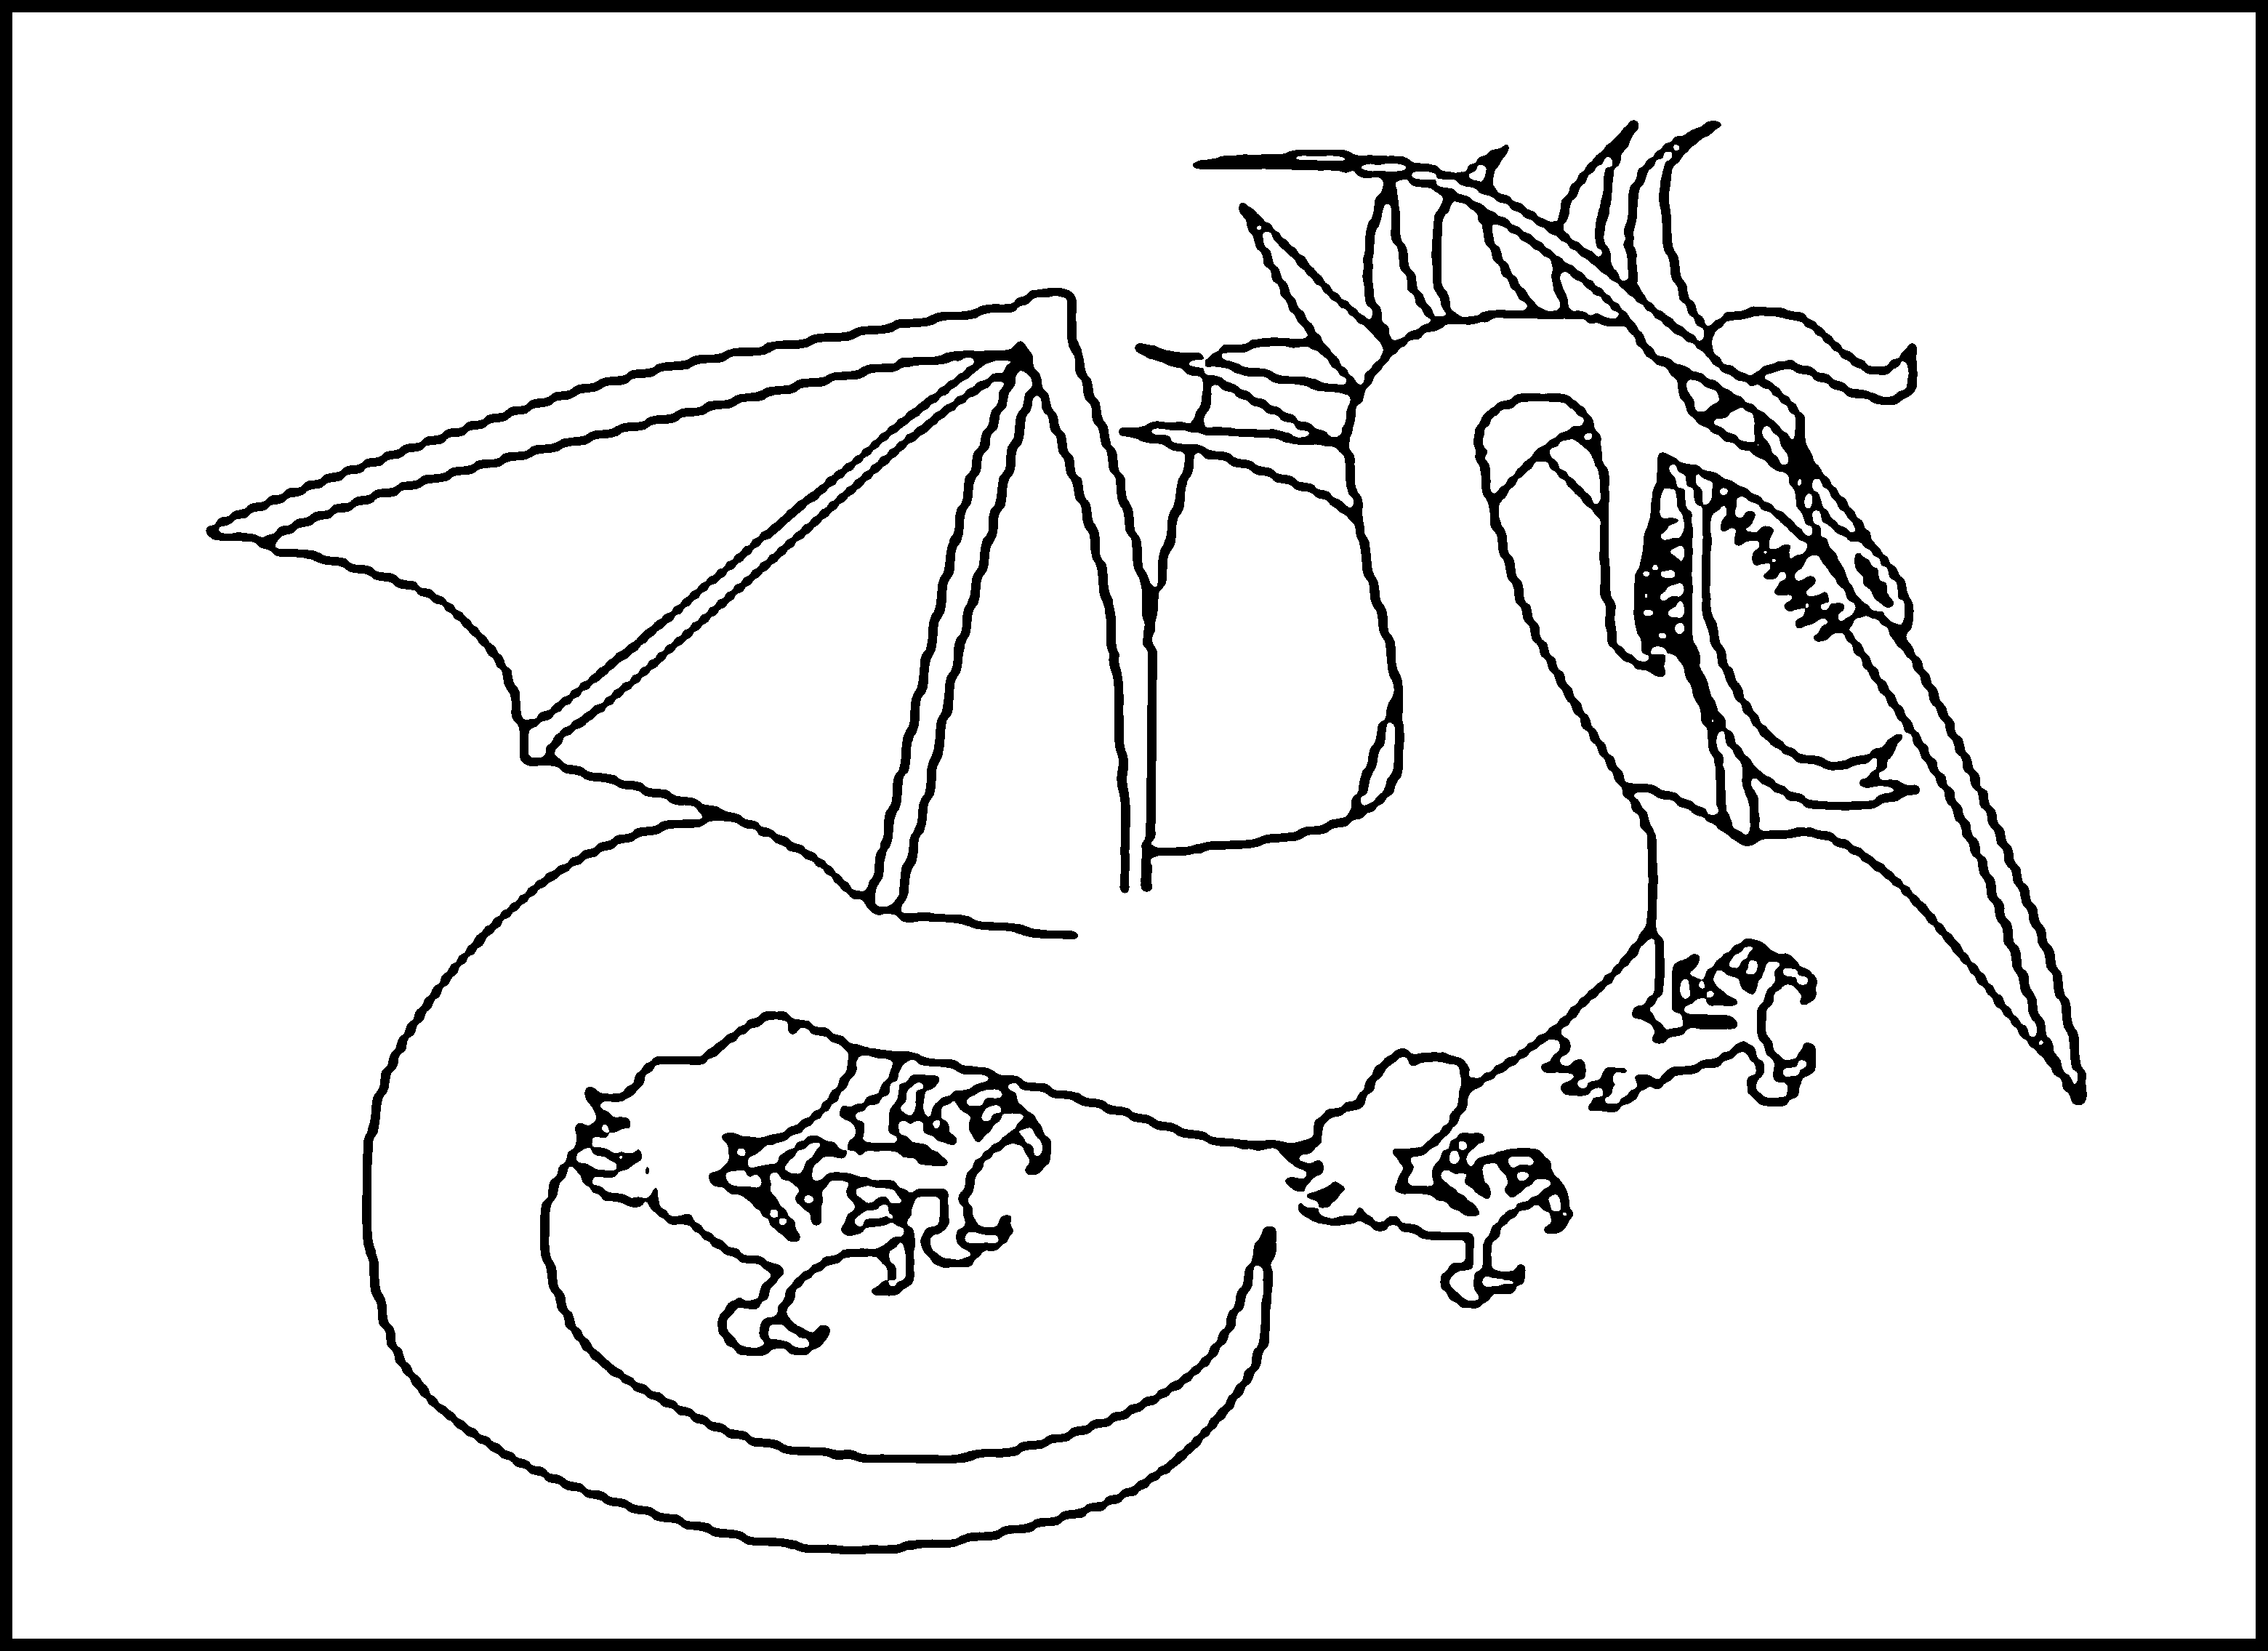 dragons coloring pages crayola - photo#33